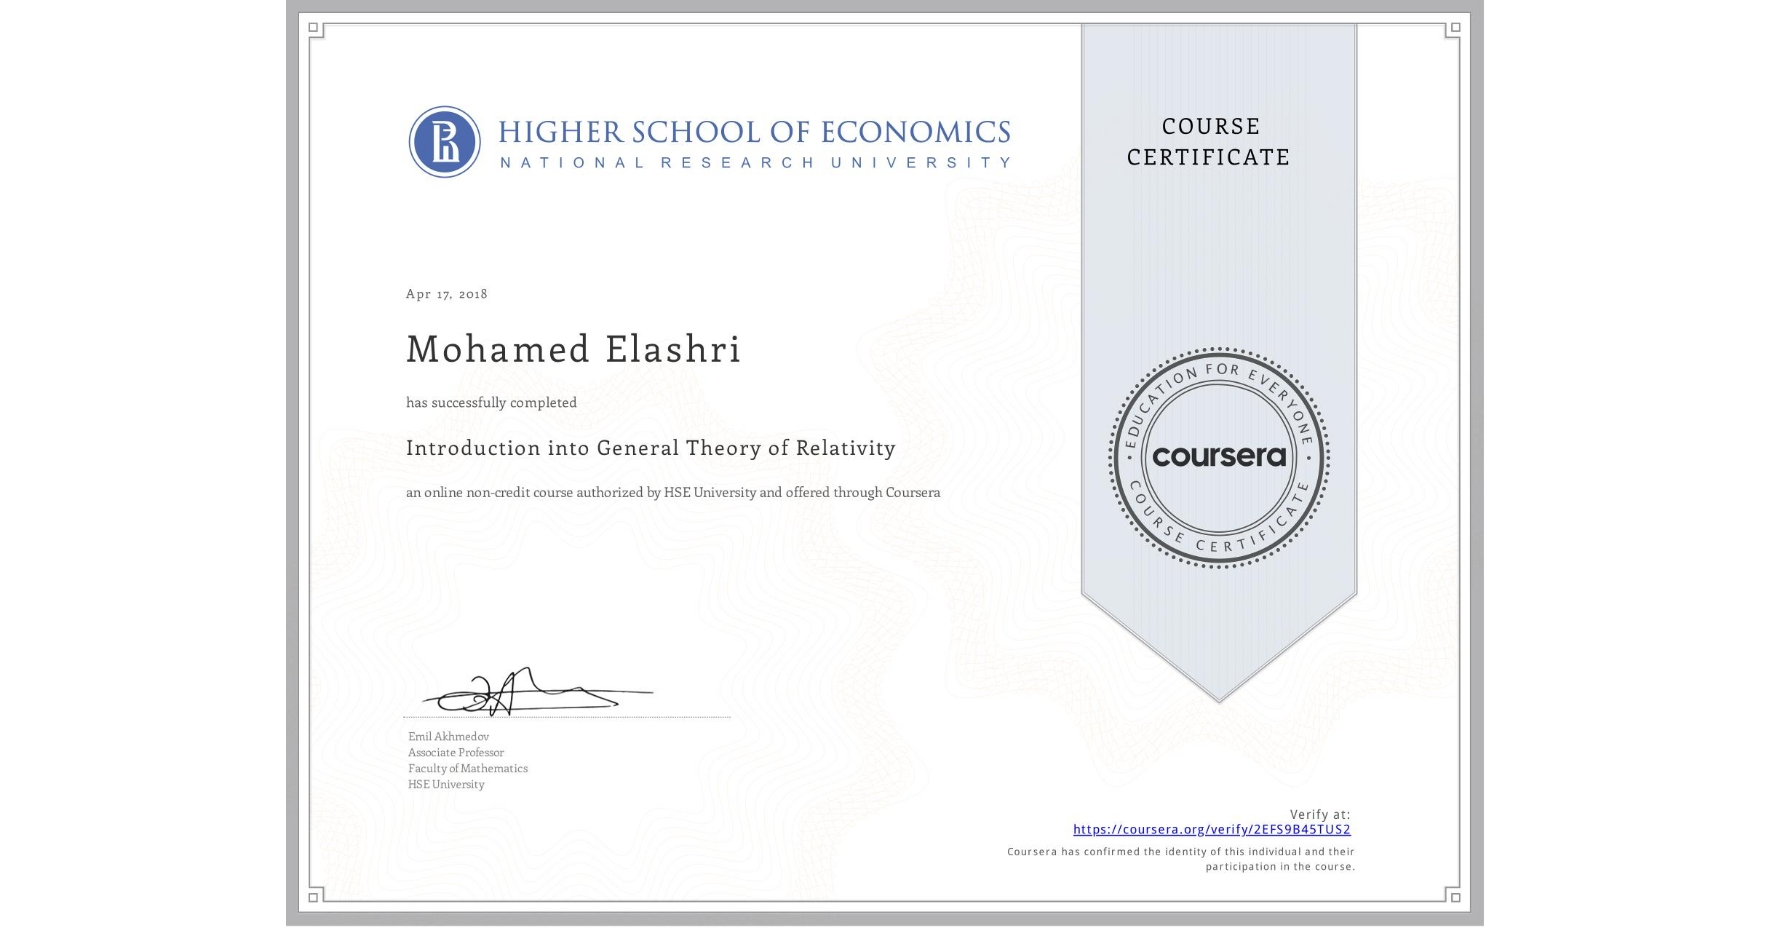 View certificate for Mohamed Elashri, Introduction into General Theory of Relativity, an online non-credit course authorized by HSE University and offered through Coursera